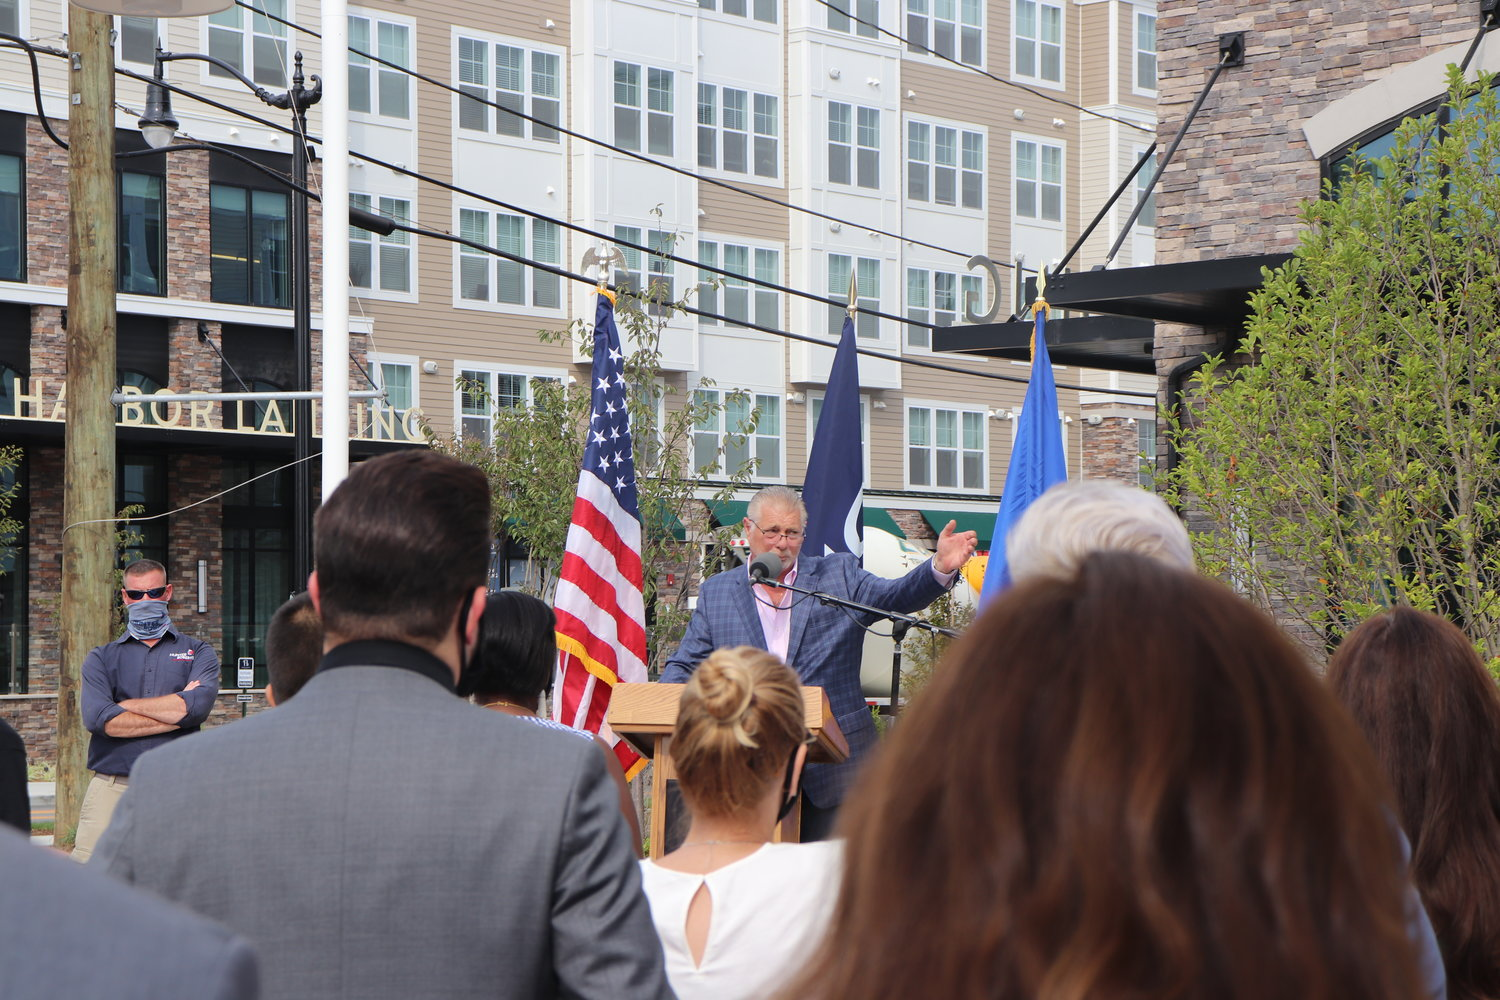 RXR Realty's Executive Vice President of Residential Development and Construction, Joe Graziose, reminisces on the progress made on the Garvies Point property in front of the attendees at the Harbor Landing ribbon cutting.